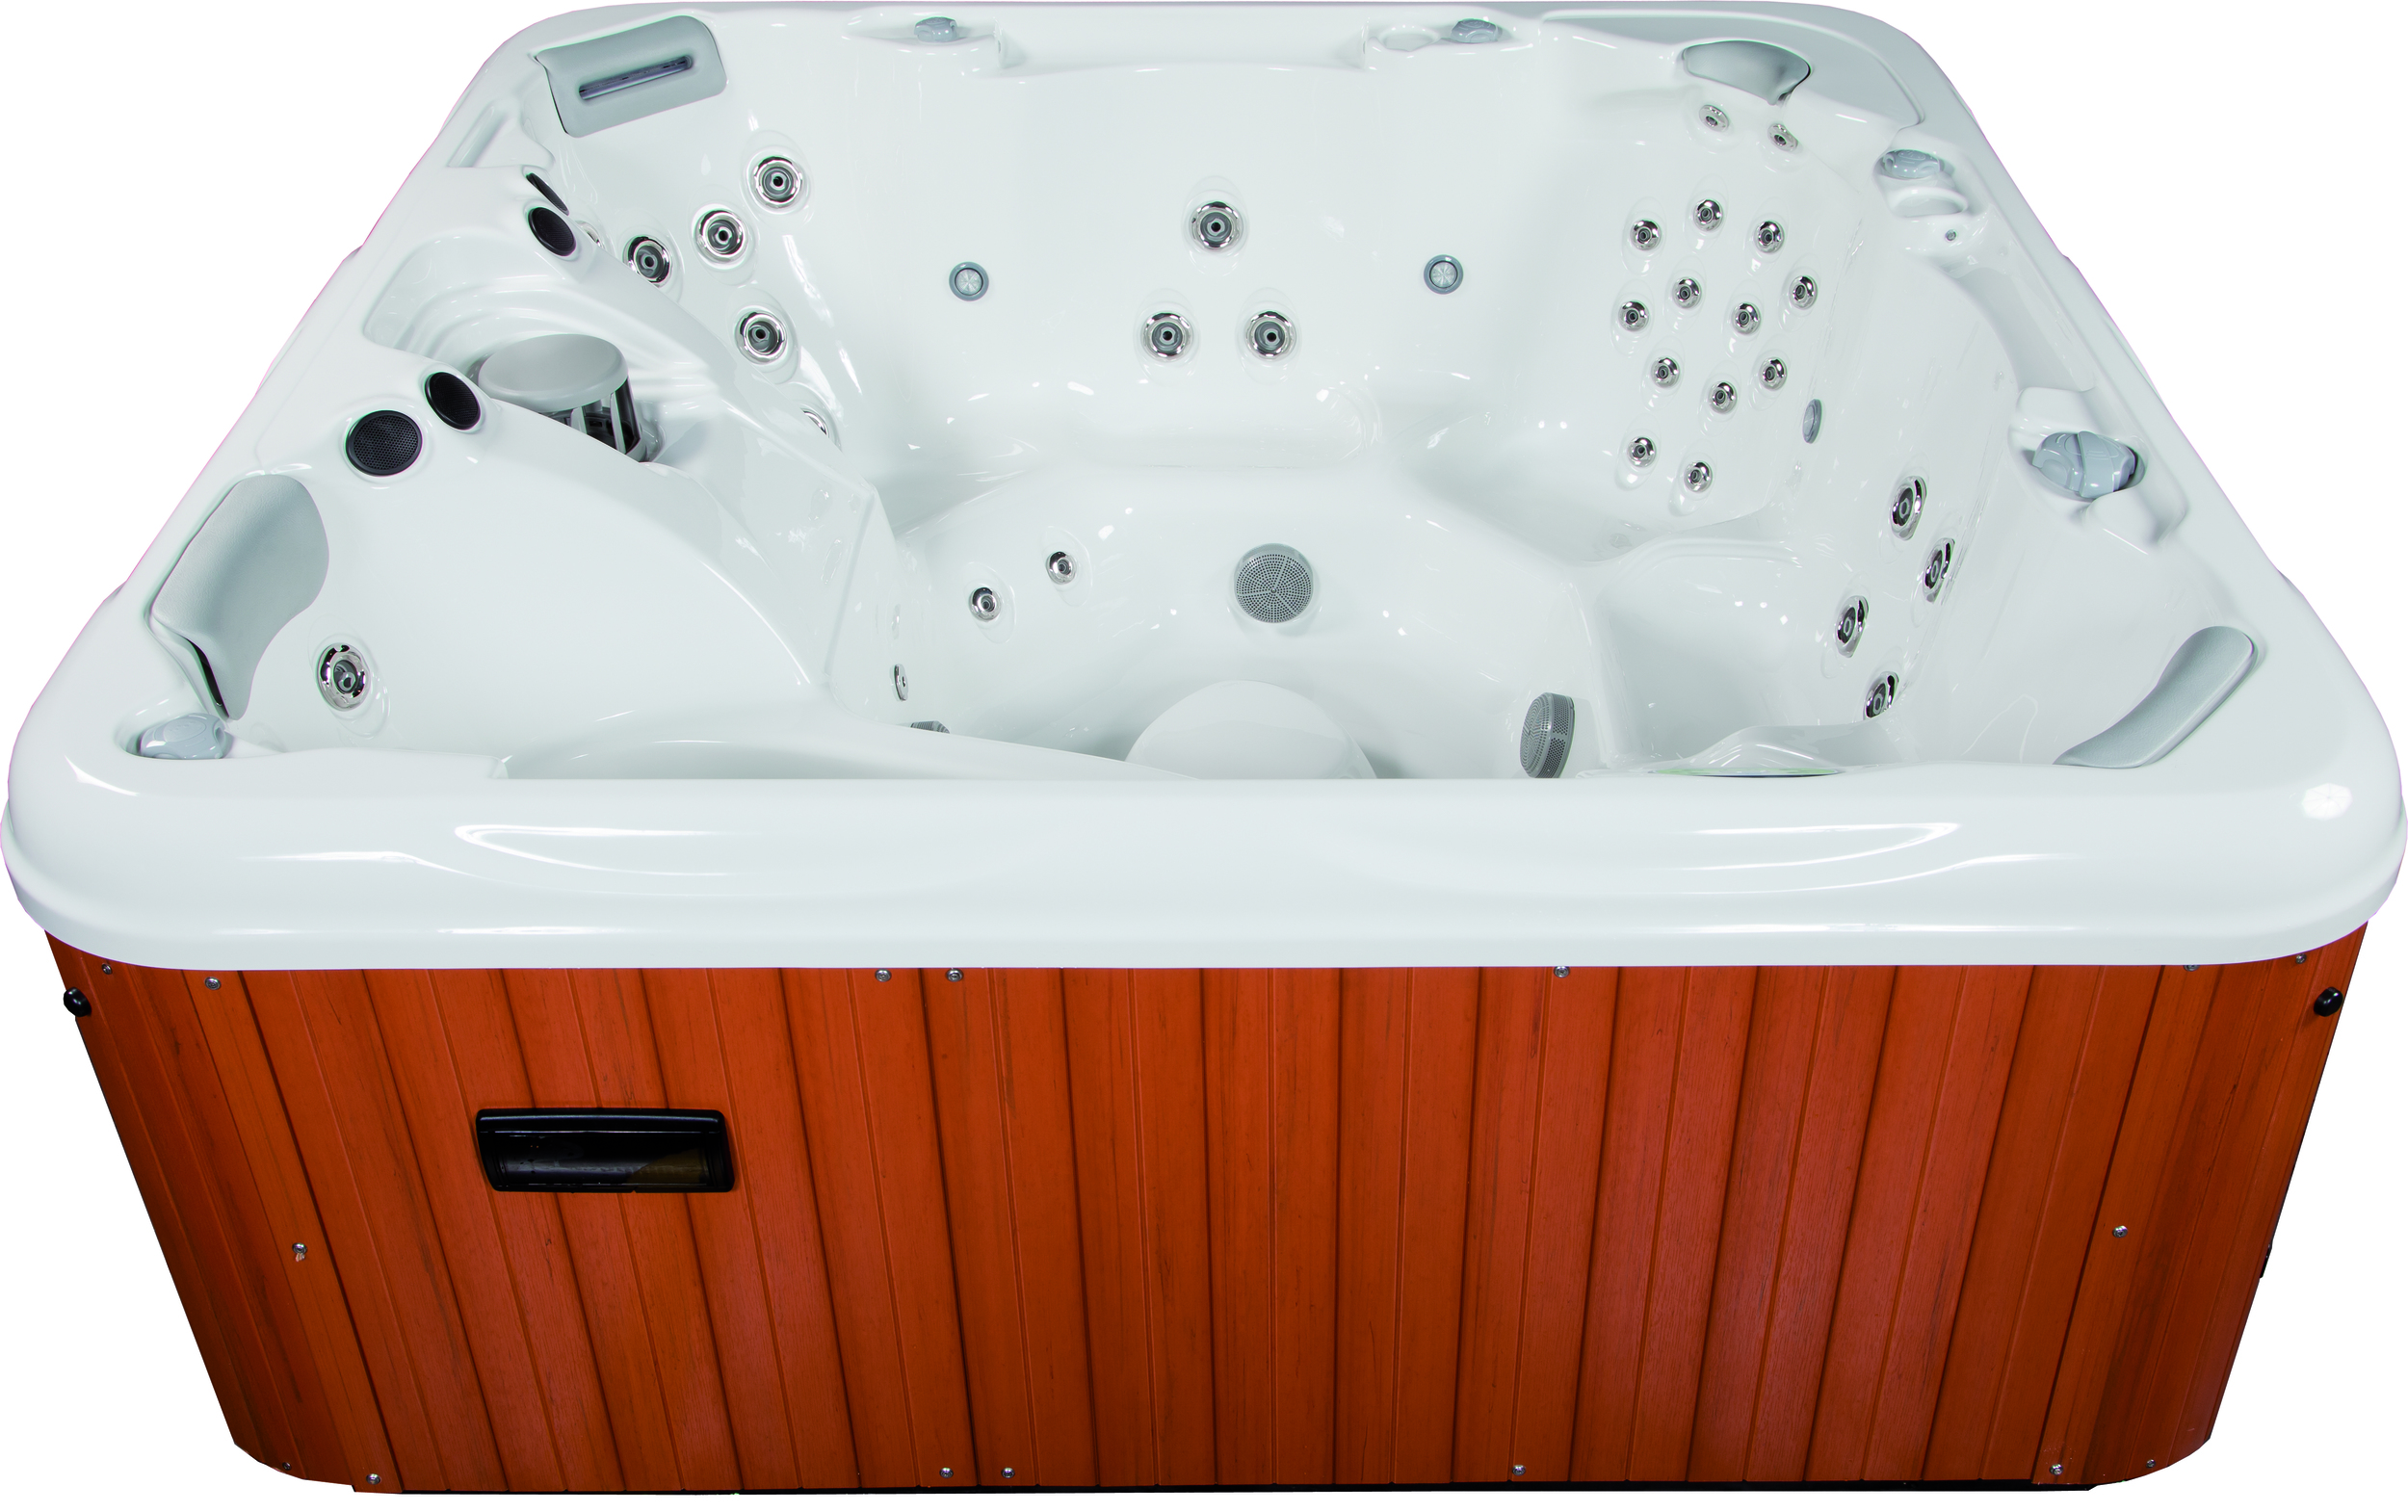 South Seas Spas offers the same look and feel of many high-end hot tubs on the market but at a more affordable price. Visit our showroom to have a seat in our demo models